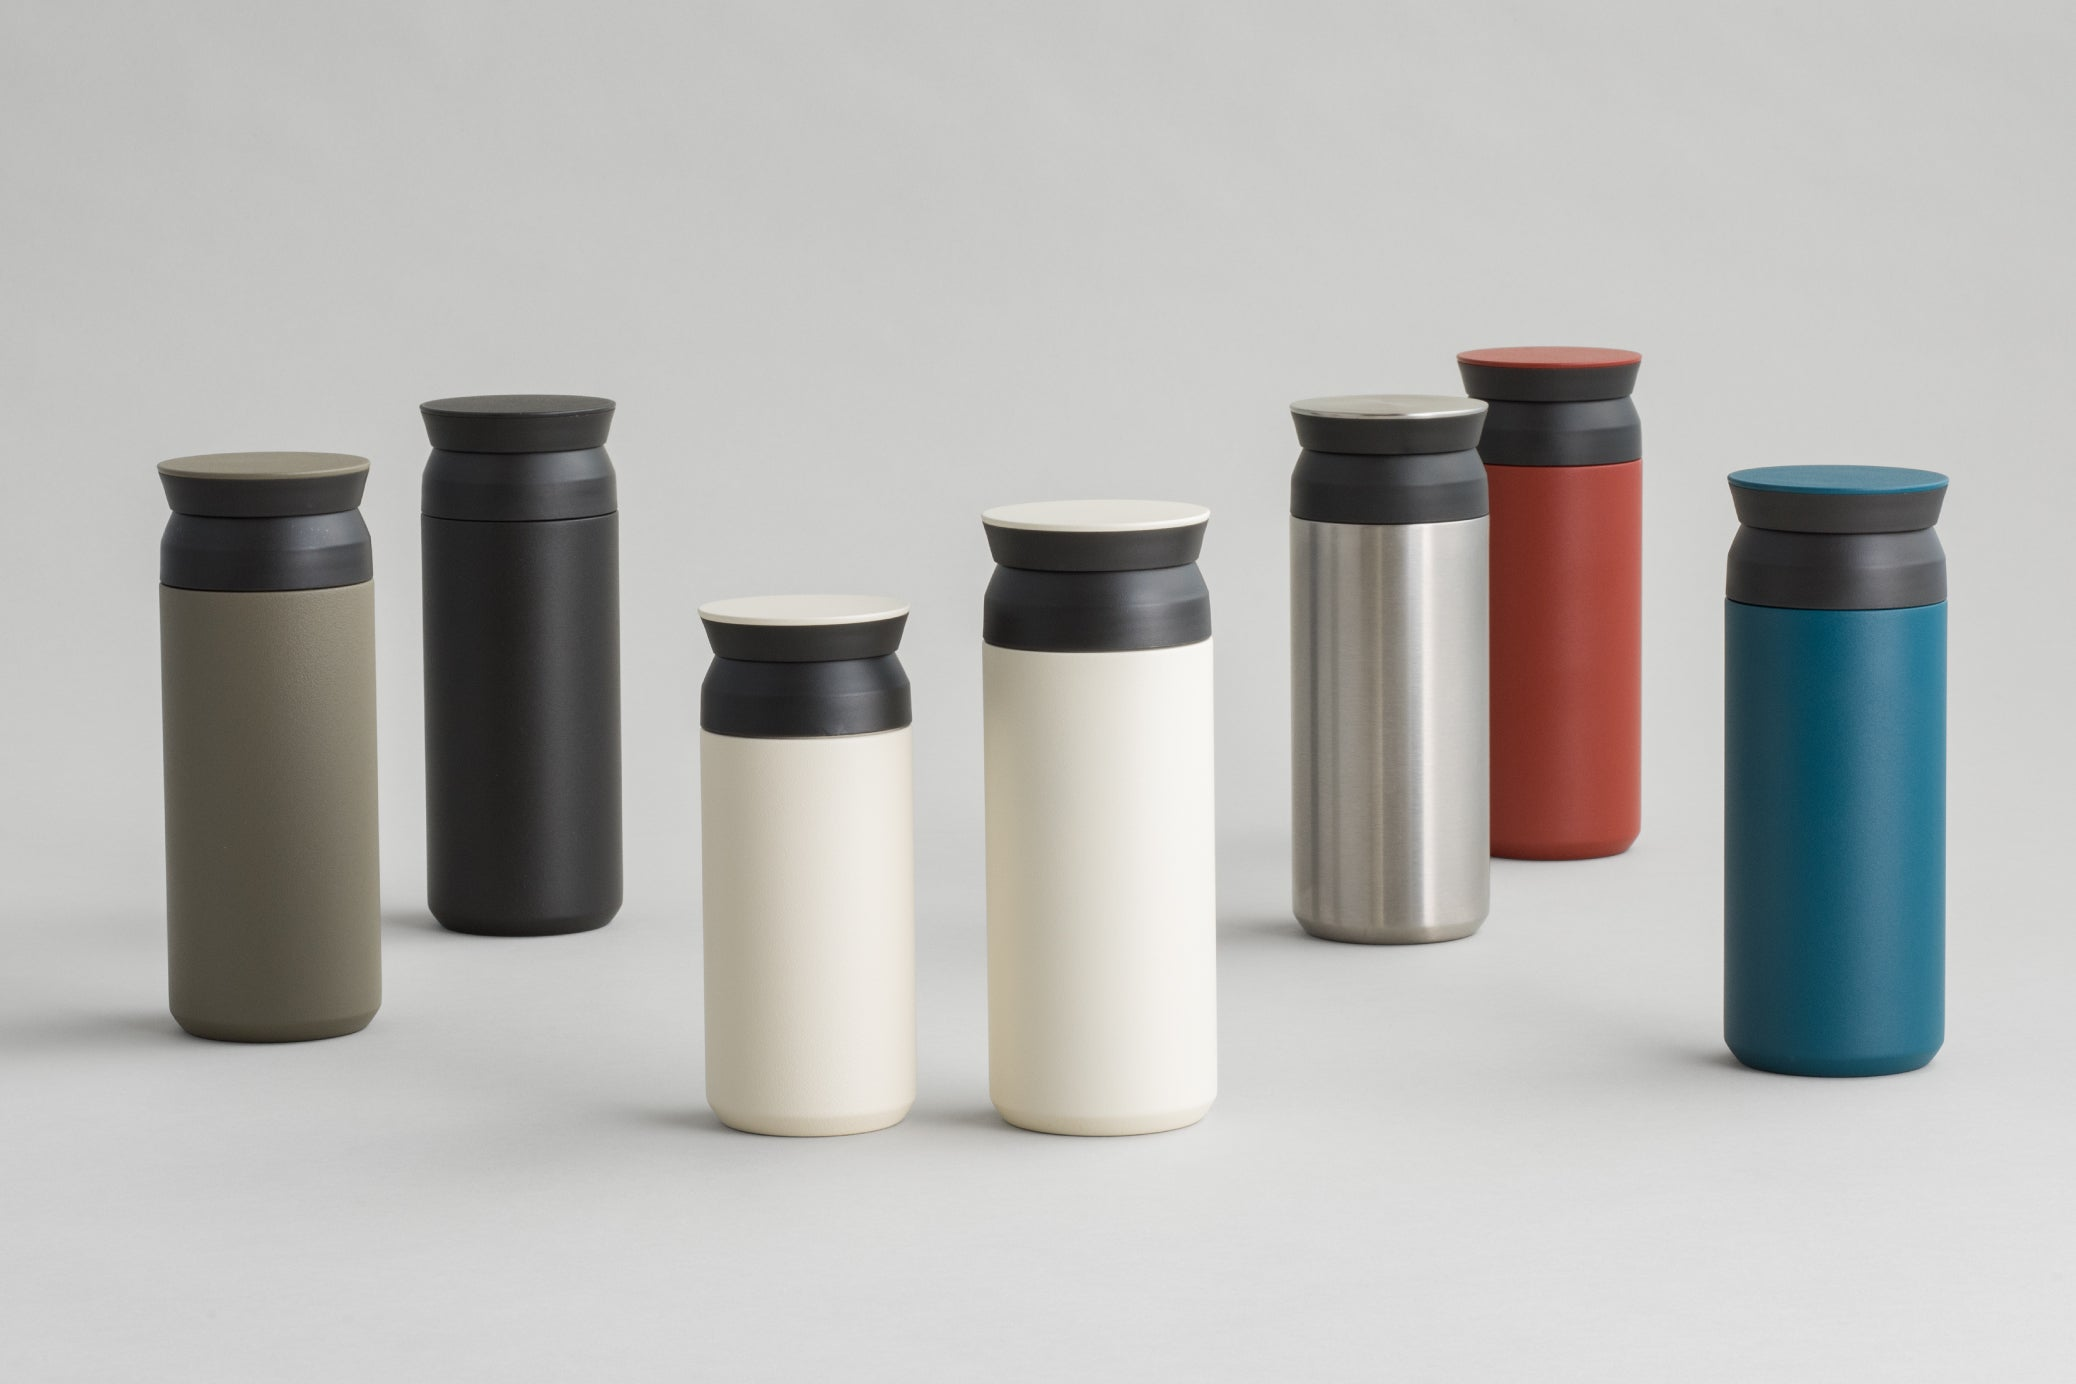 TRAVEL tumbler collection in black, white, red, turquoise, and stainless steel